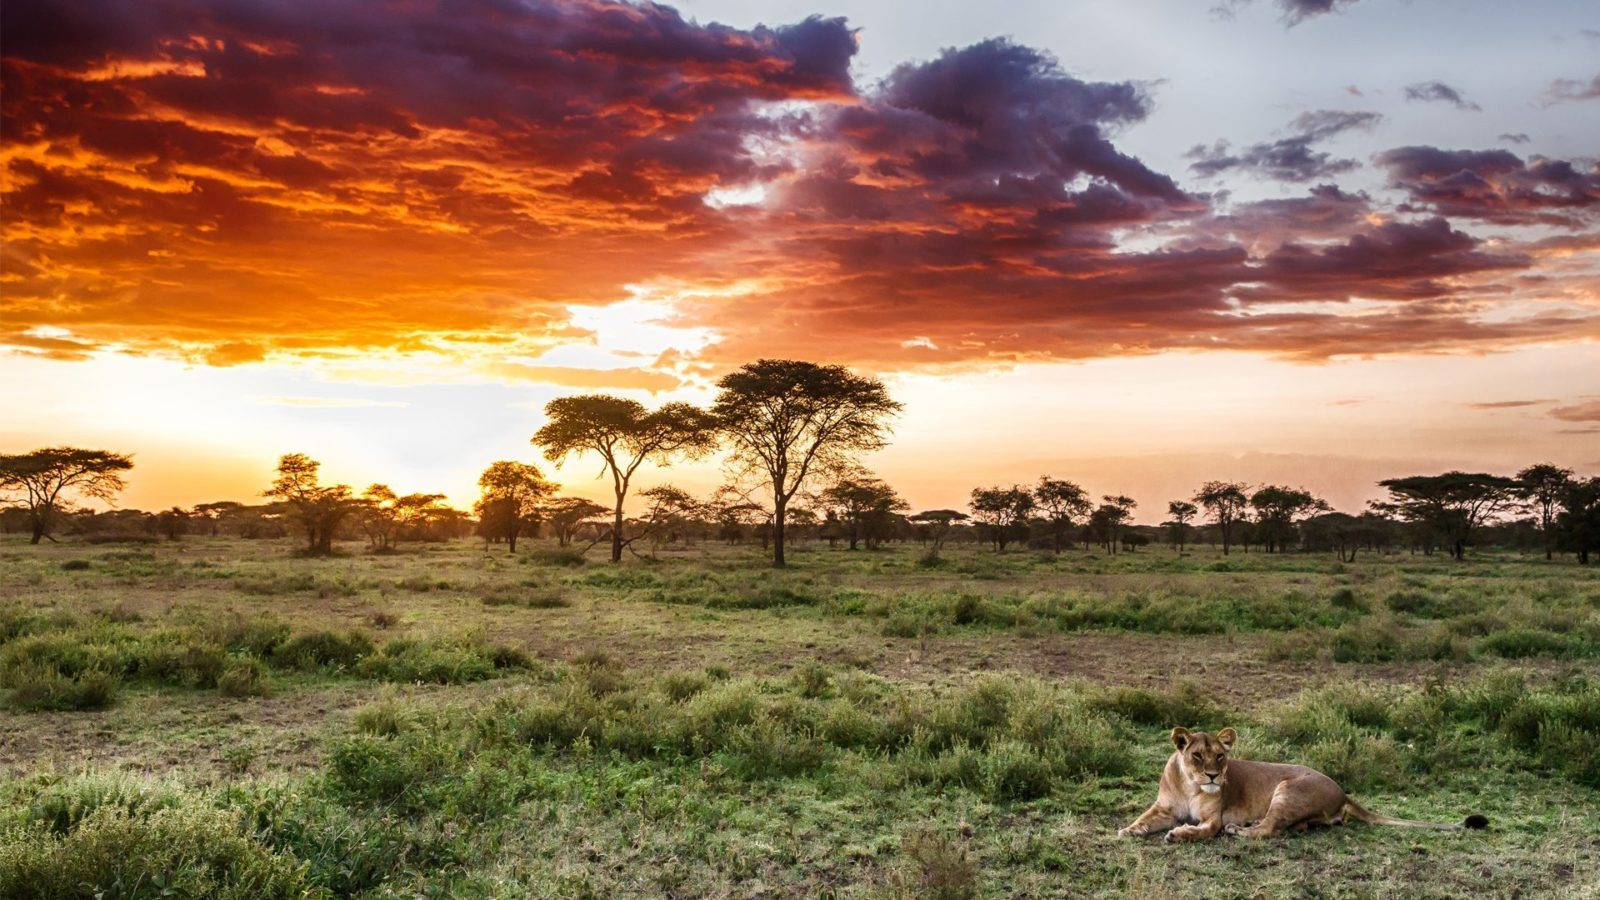 lion-in-the-grass-in-serengeti-national-park-1600x900